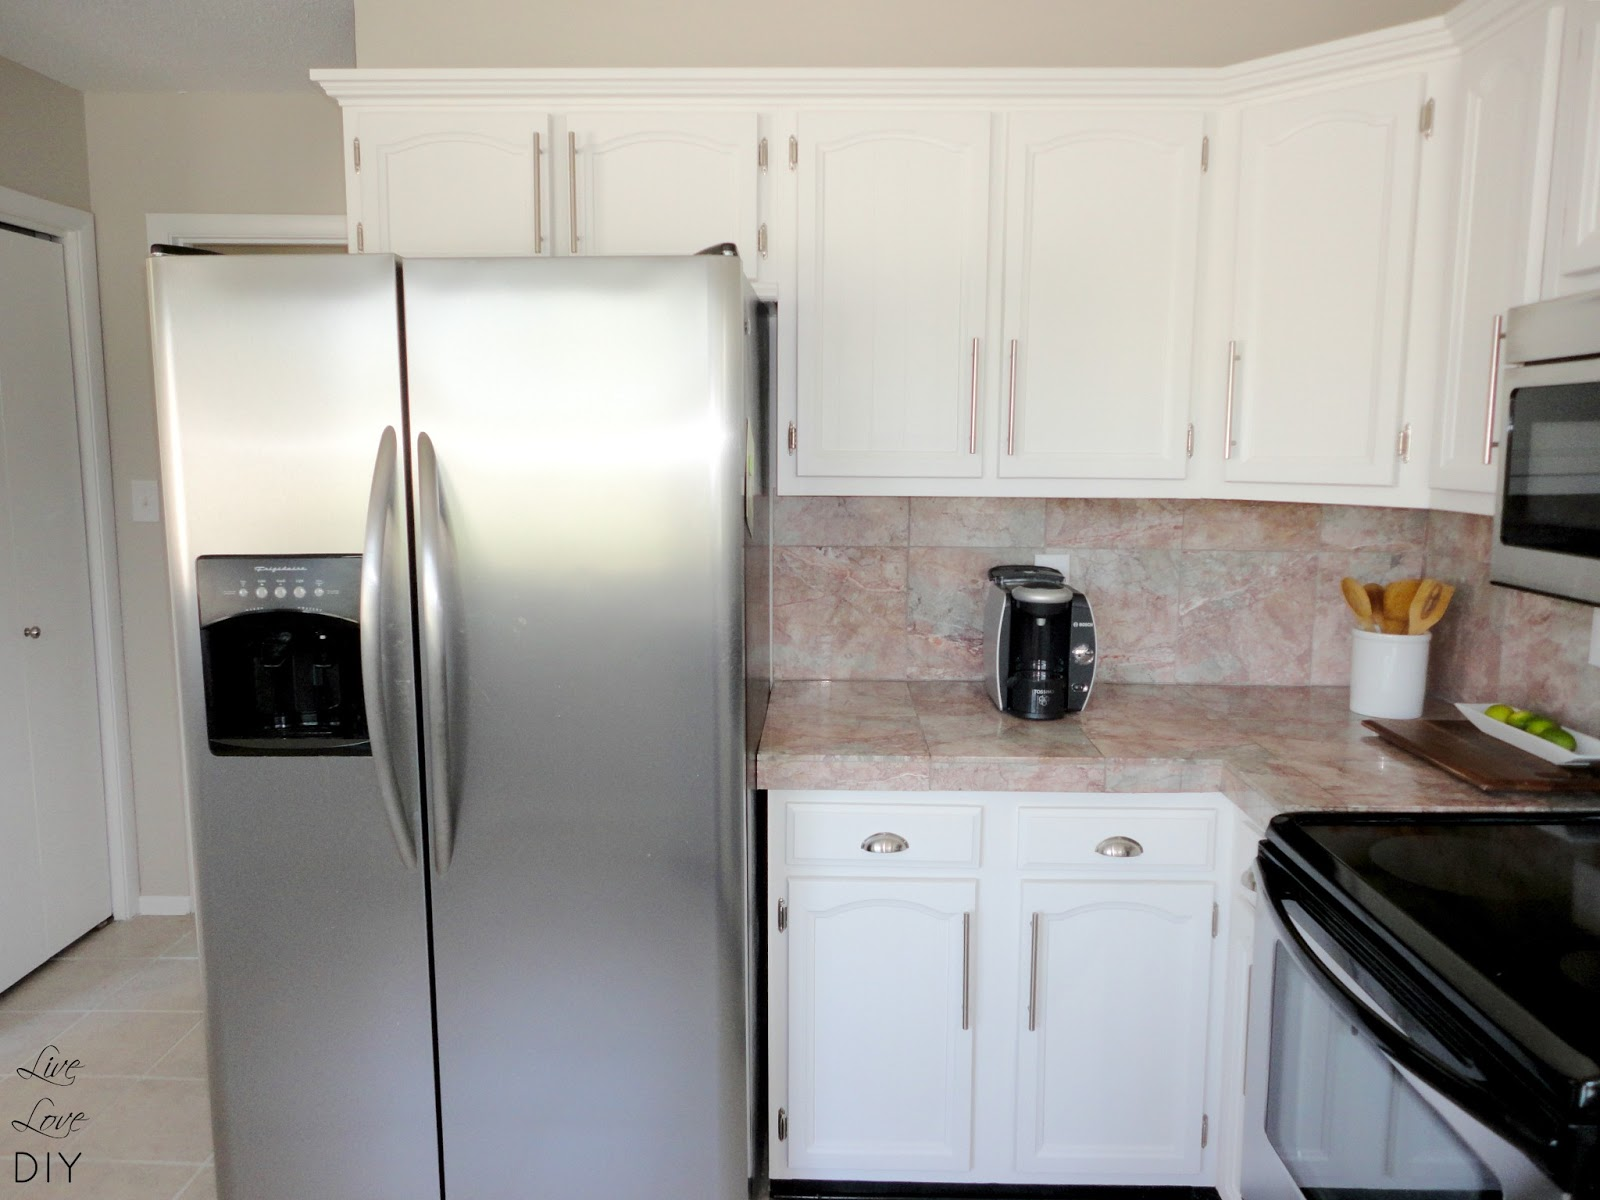 Refurbish Kitchen Cabinets Livelovediy How To Paint Kitchen Cabinets In 10 Easy Steps